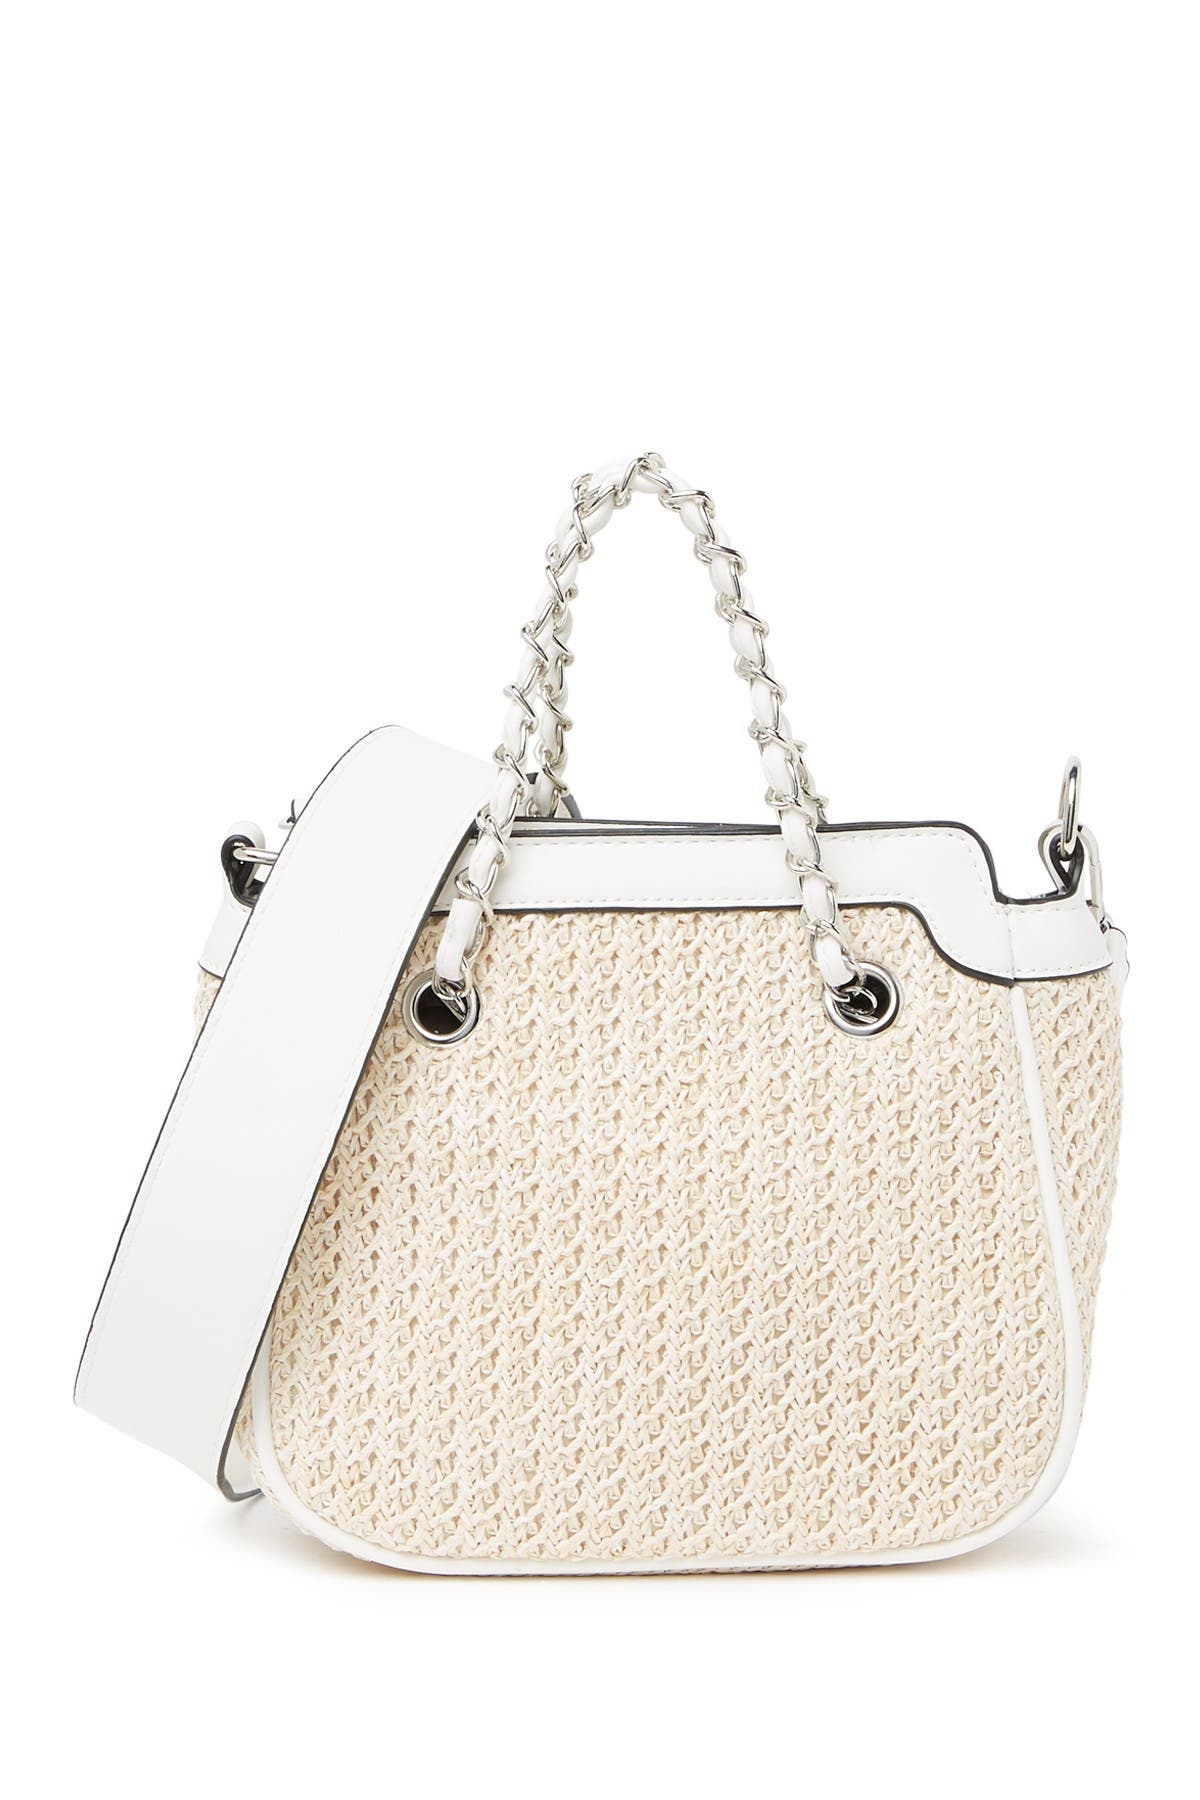 Image of Renata Corsi Woven Leather Shoulder Bag